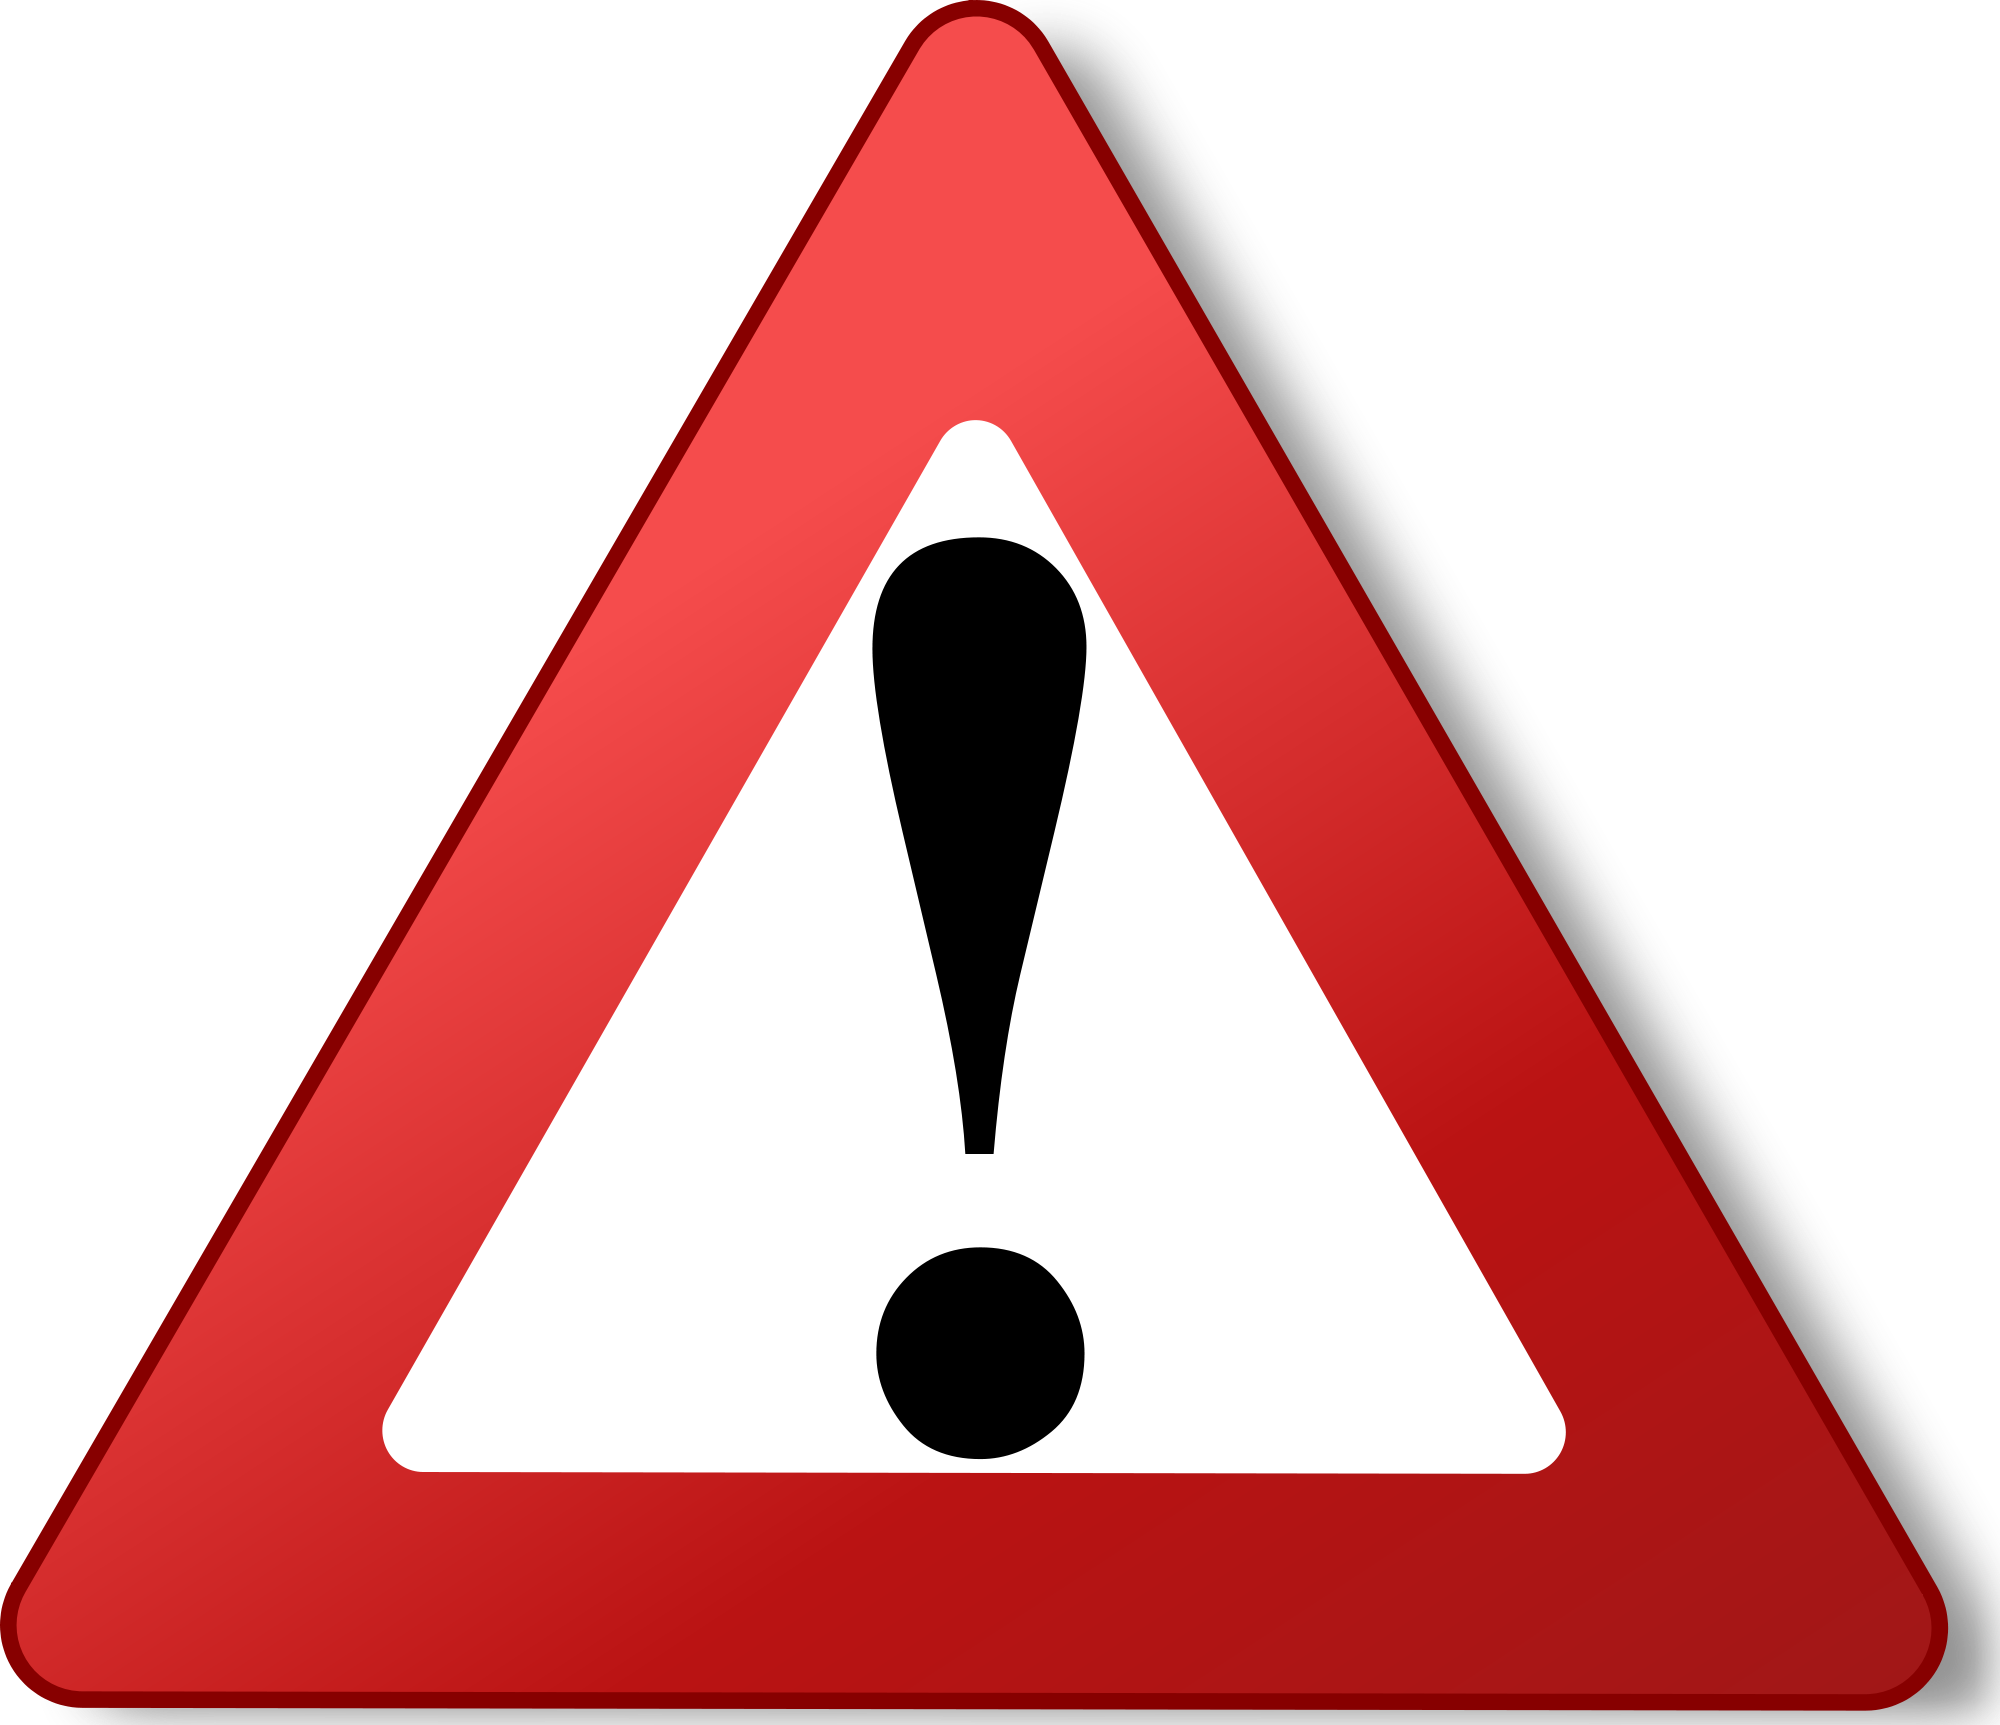 Warning Triangle 256x256 Png Icon.